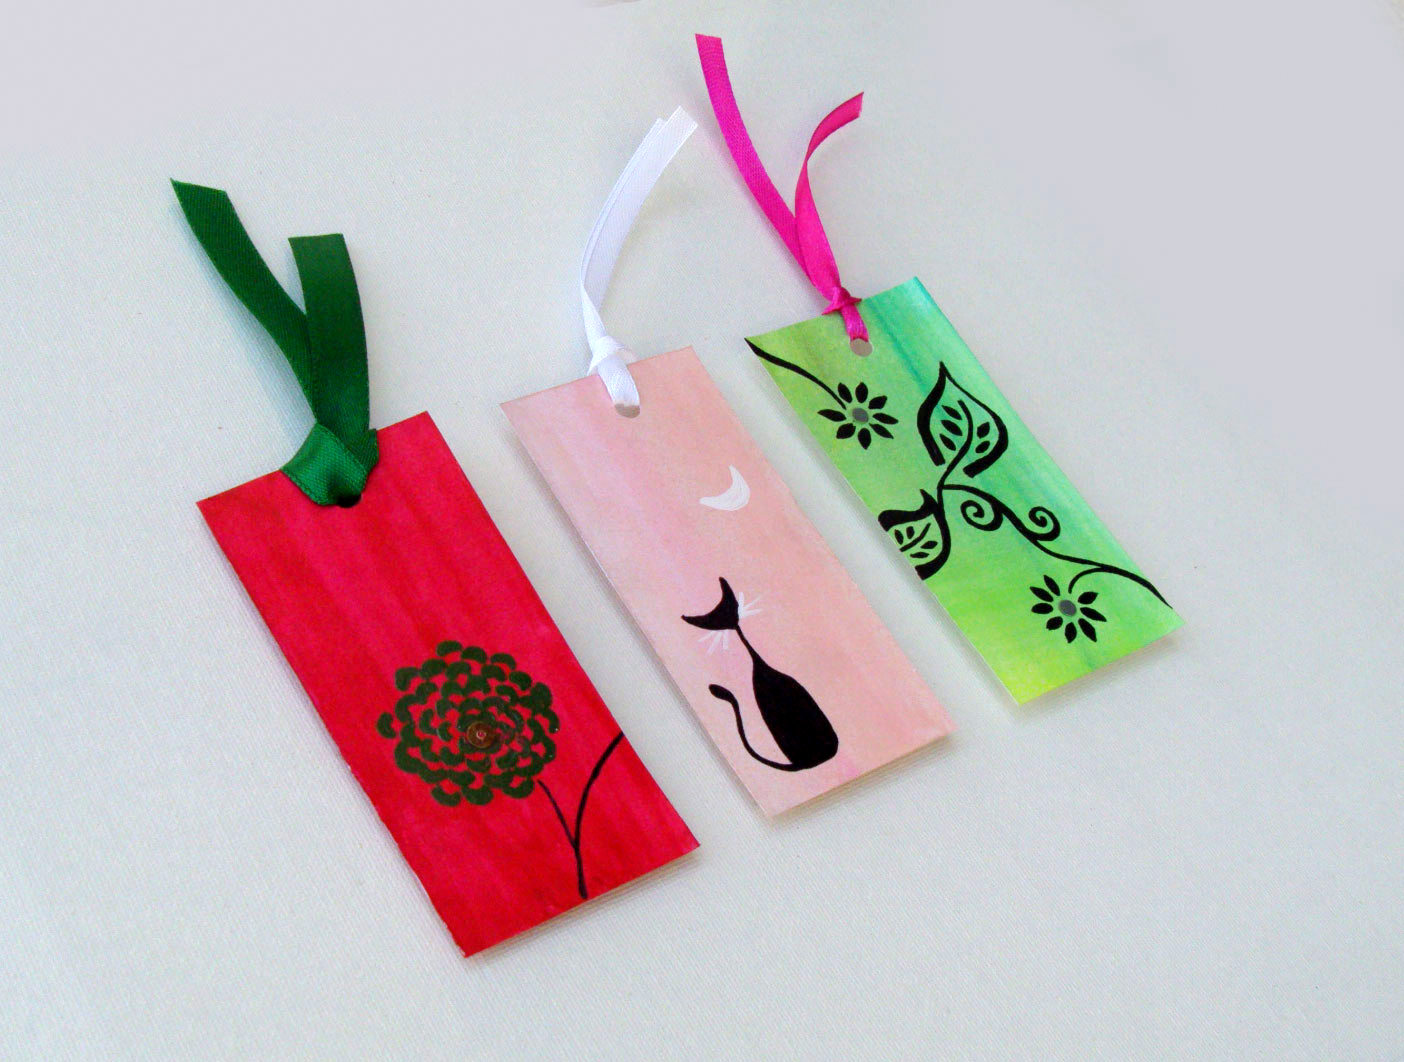 Free Information and News about Handmade Gifts - Handmade Bookmarks - Handmade Gifts India Online - Handmade Giftables for sale